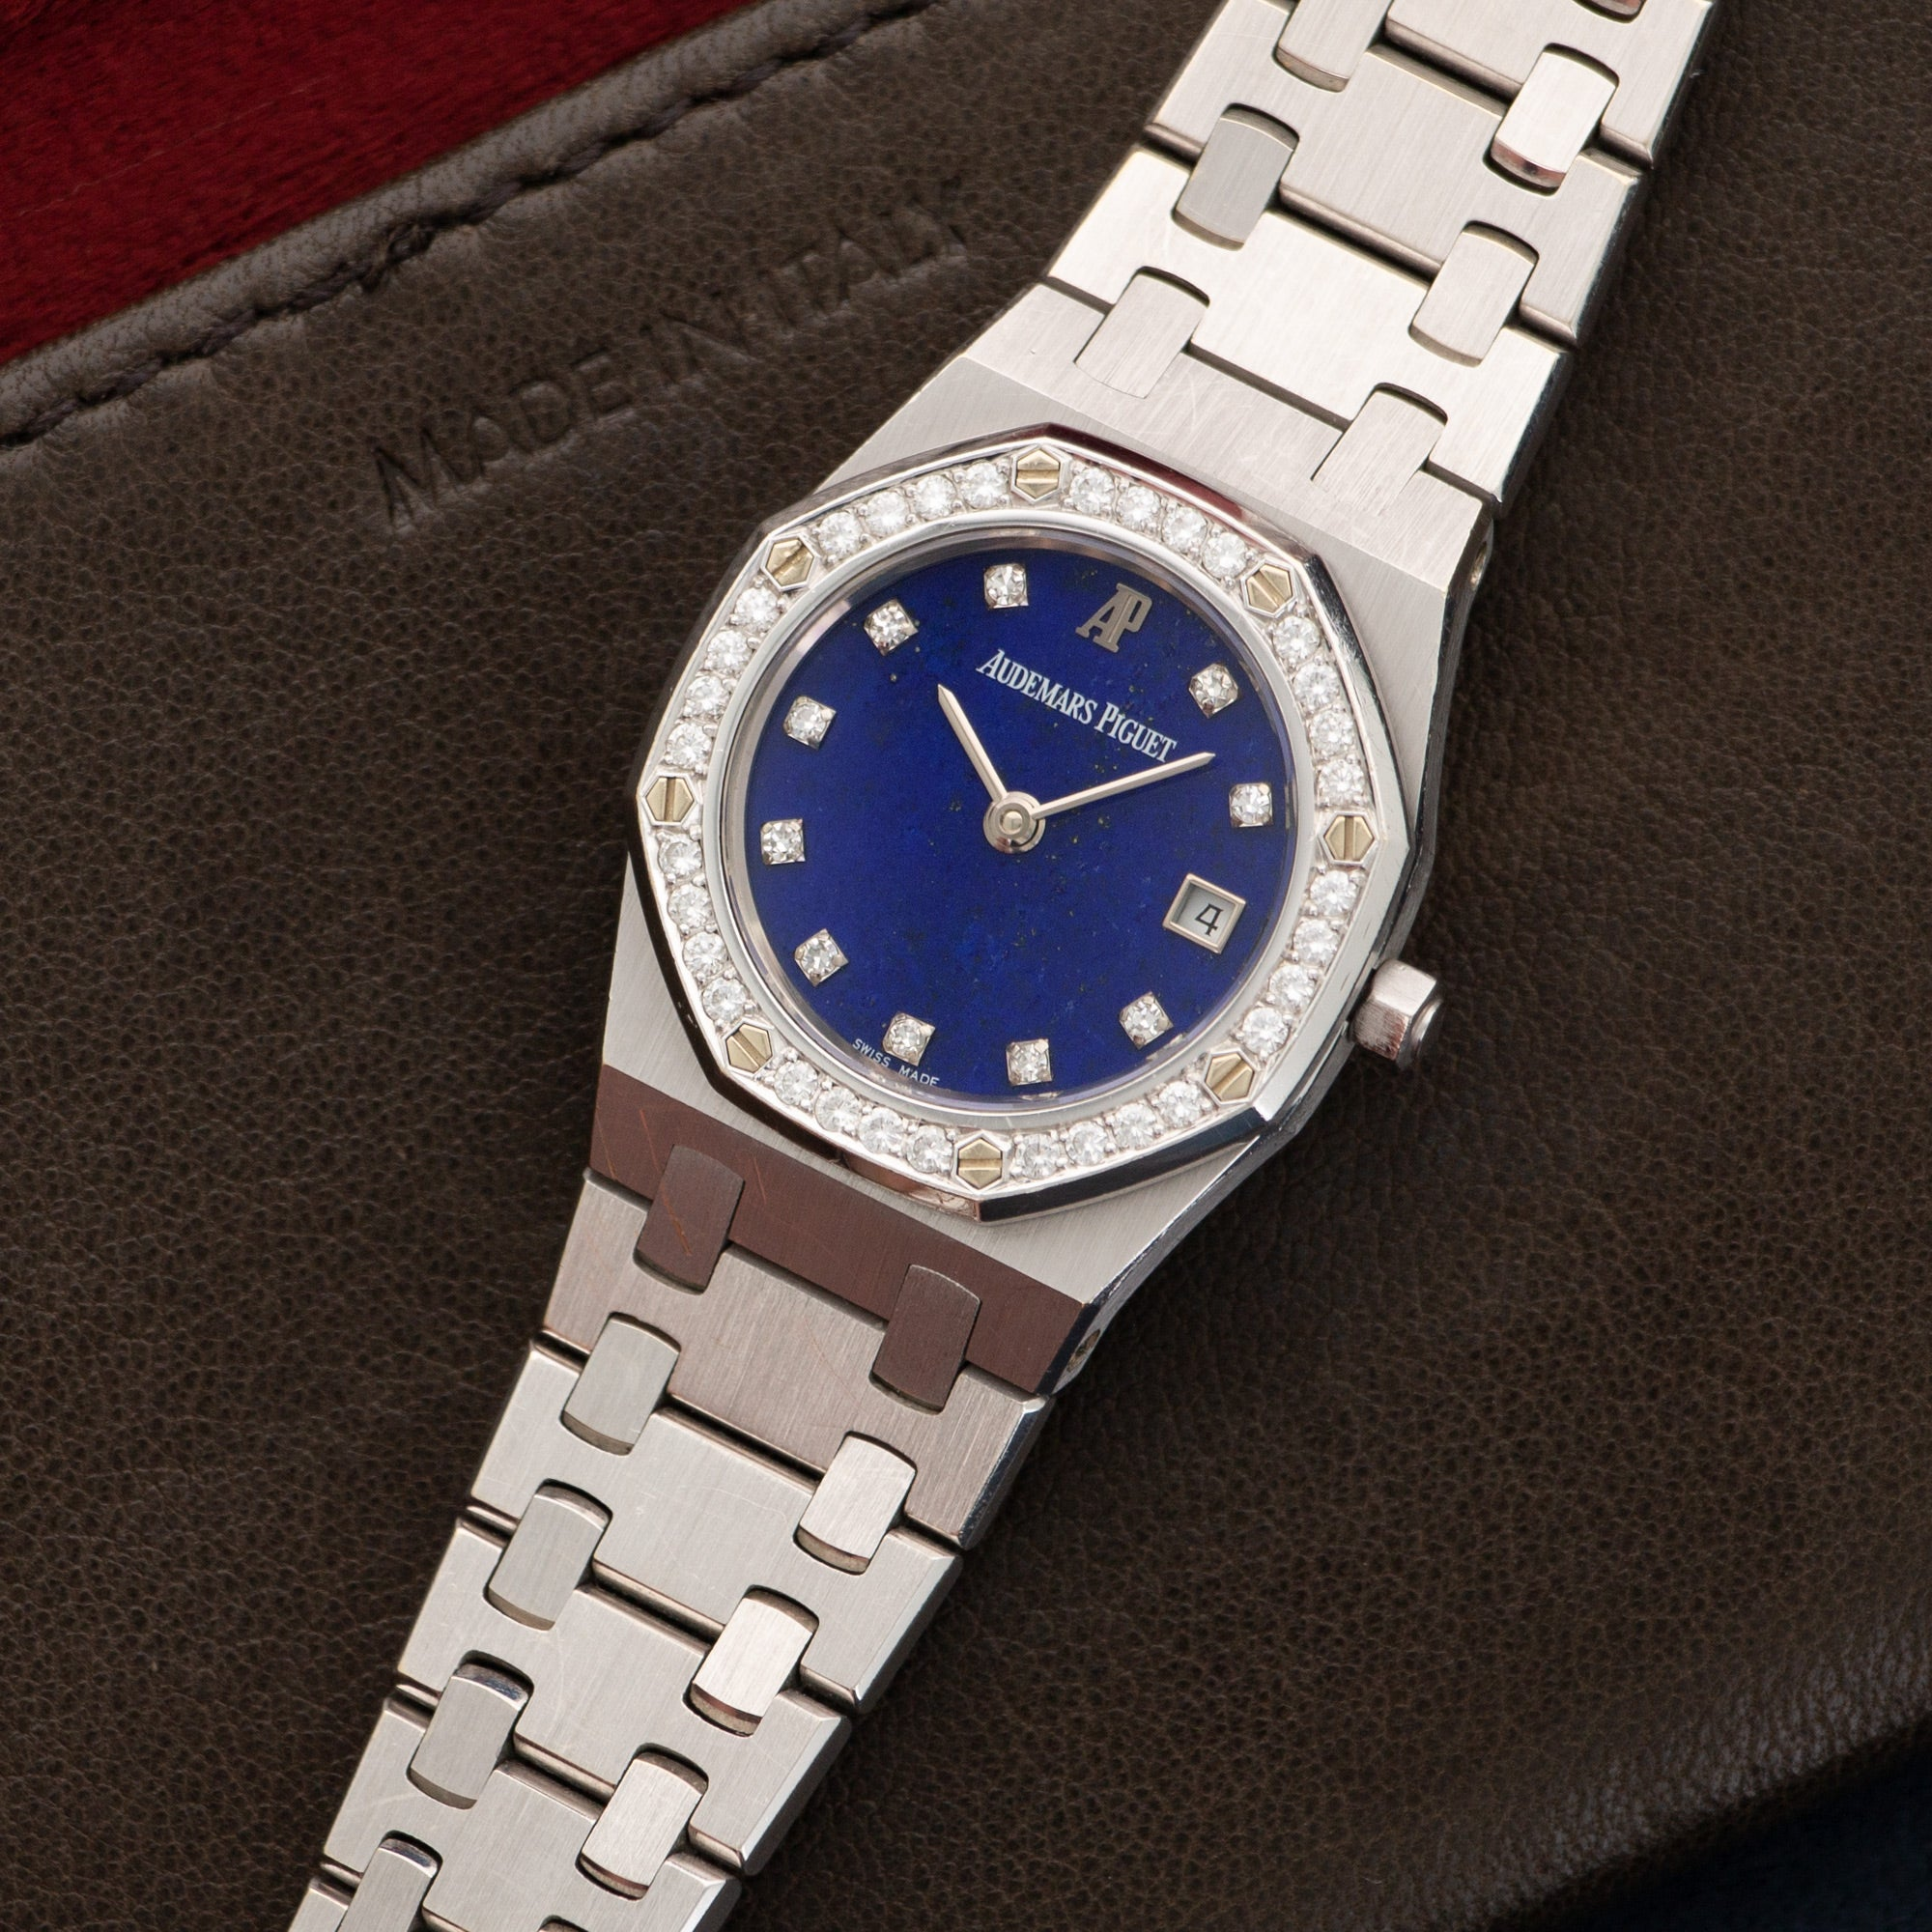 Audemars Piguet Royal Oak N/A 18k WG  Excellent Ladies 18k WG Lapis Lazuli With Diamonds 25mm Quartz 1990s White Gold Bracelet Leather Travel Case